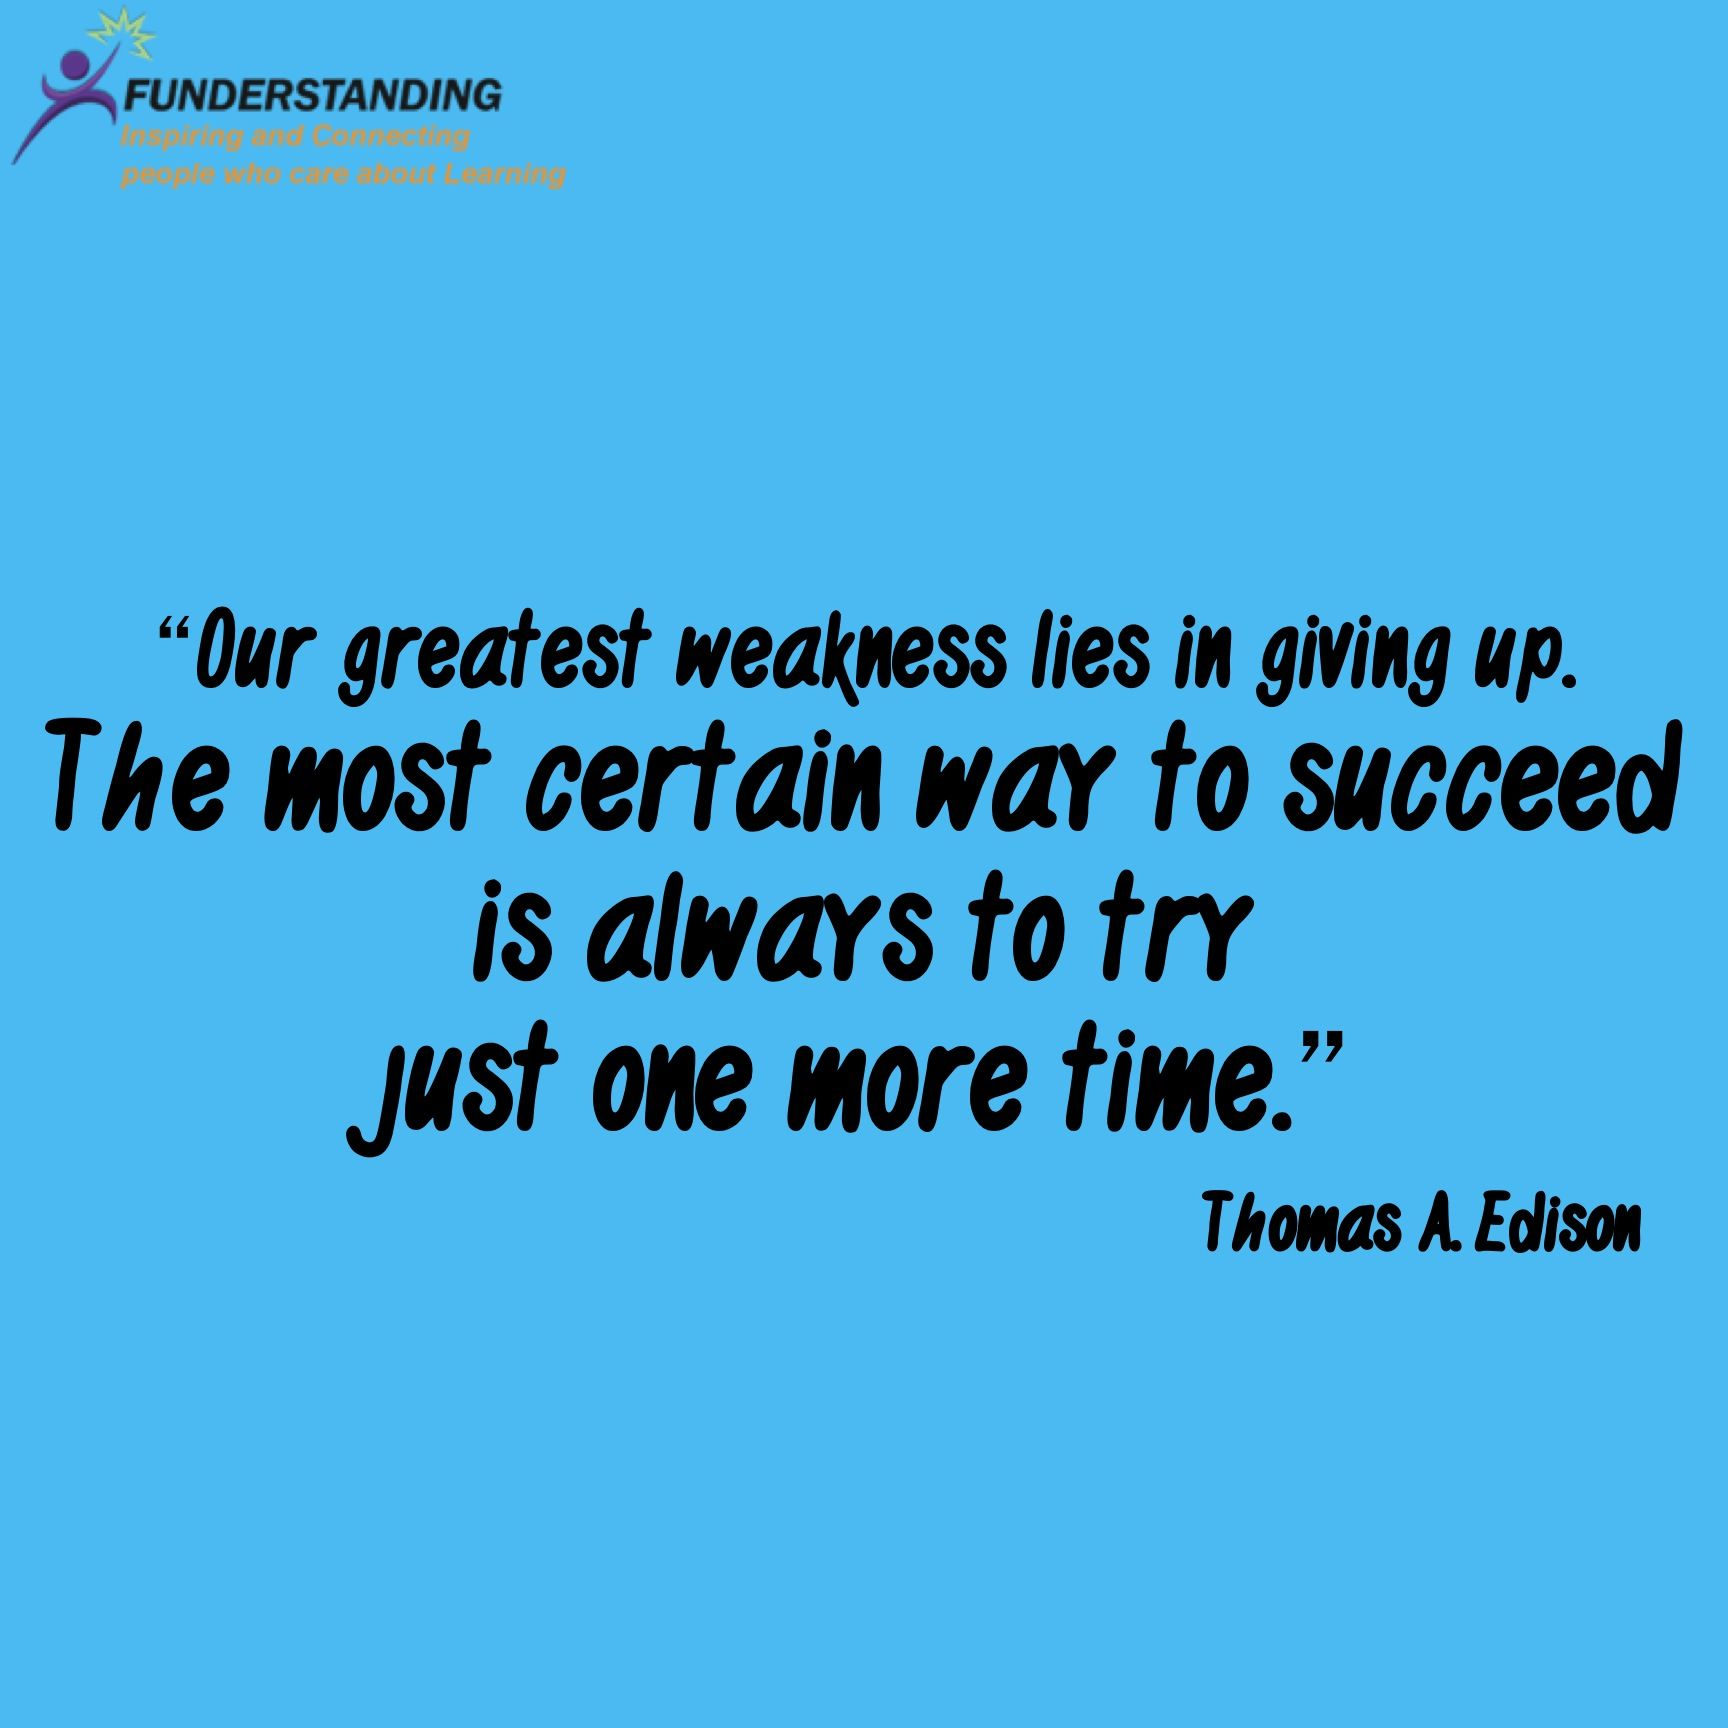 Encouraging Quotes For Students Educational Quotes  Funderstanding Education Curriculum And